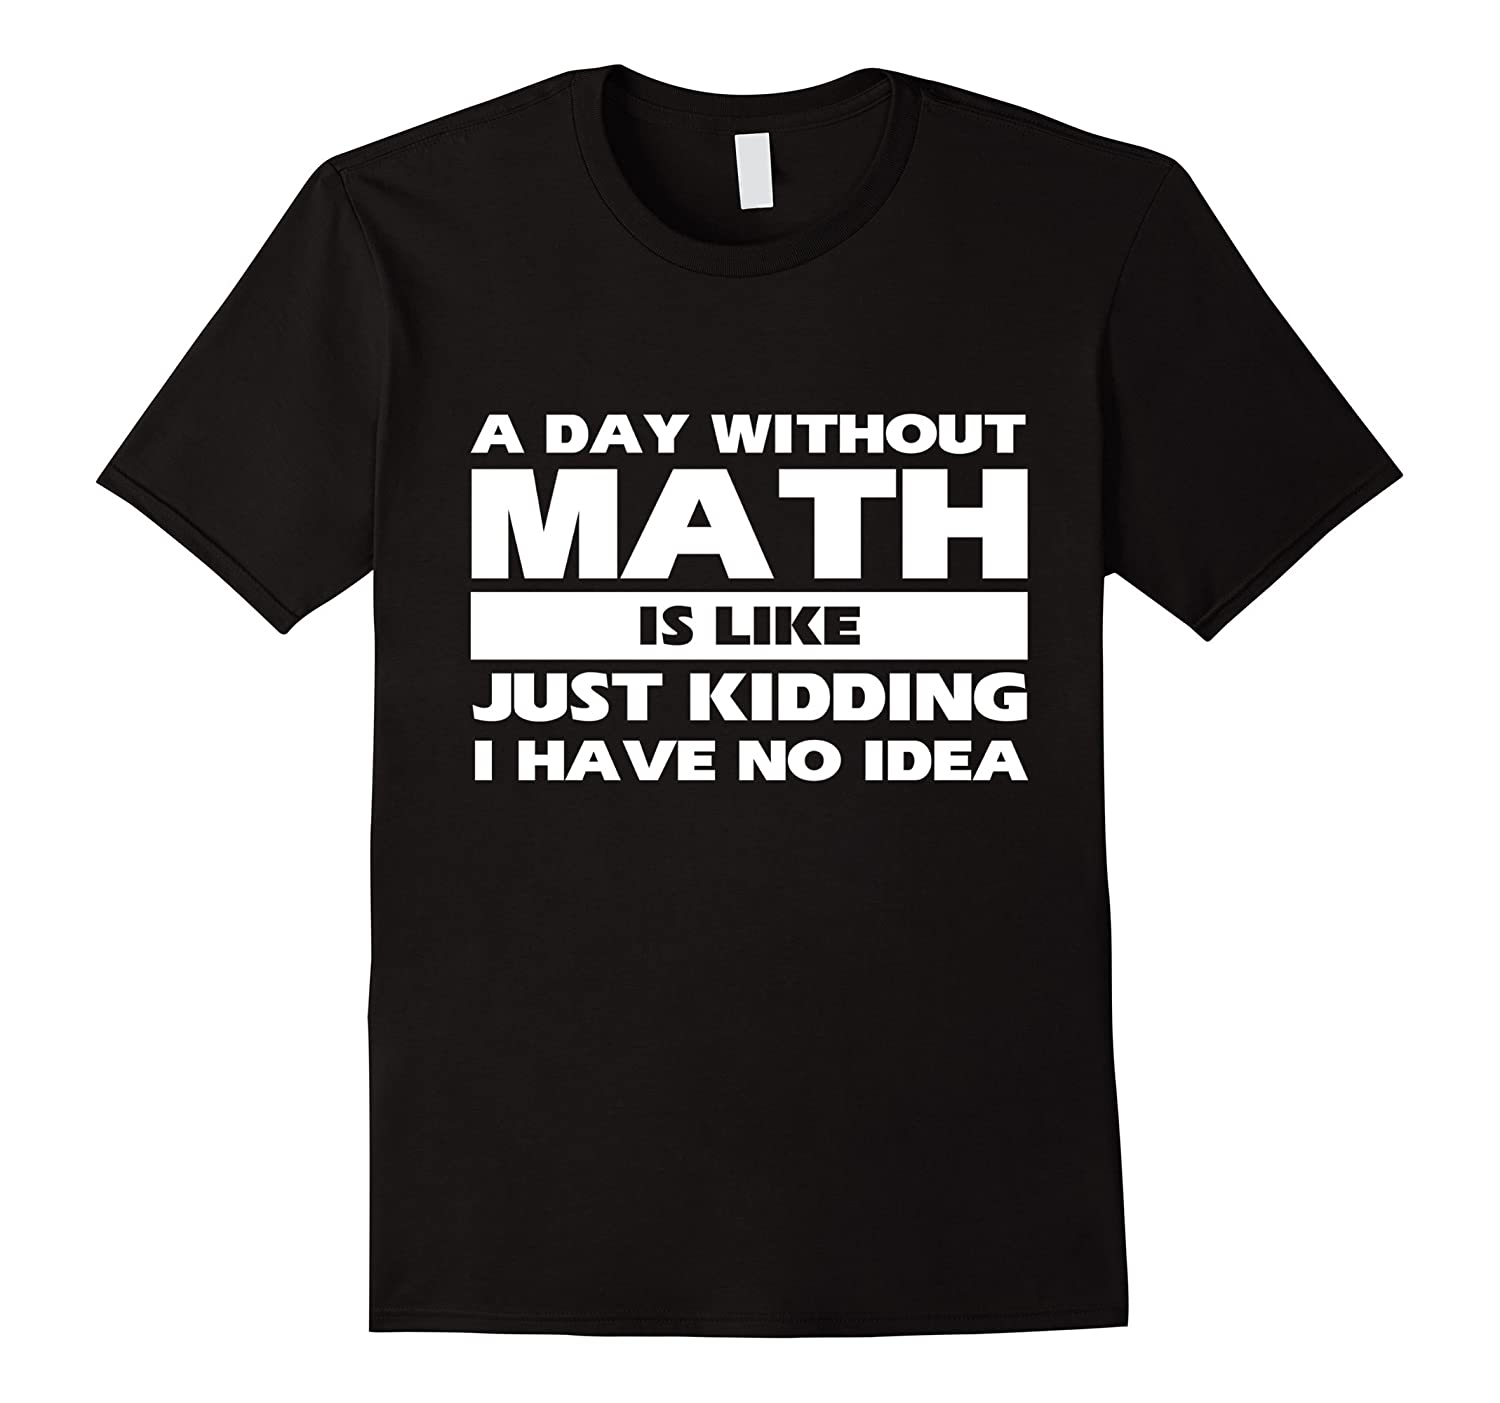 A day without math is like just kidding I have Idea T-shirt-TJ